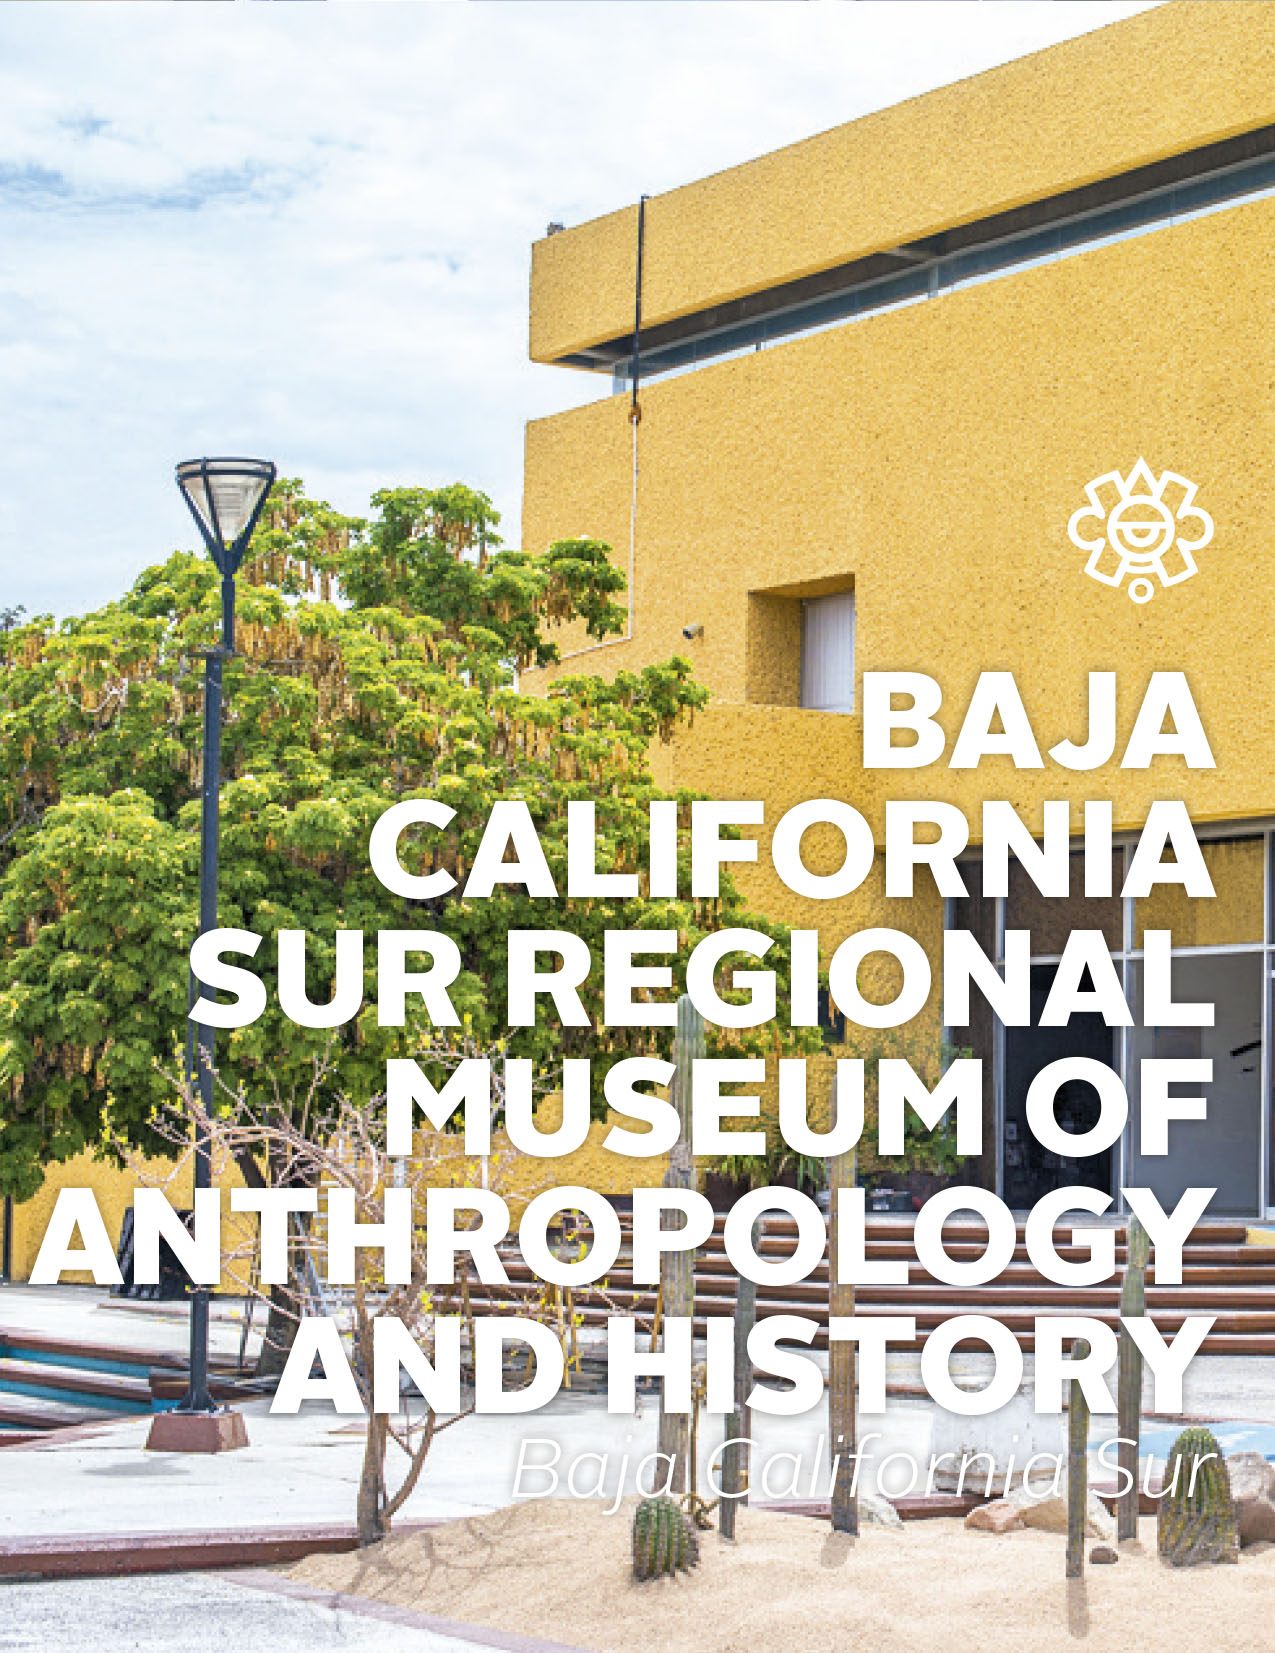 Baja California Sur Regional Museum of Anthropology and History